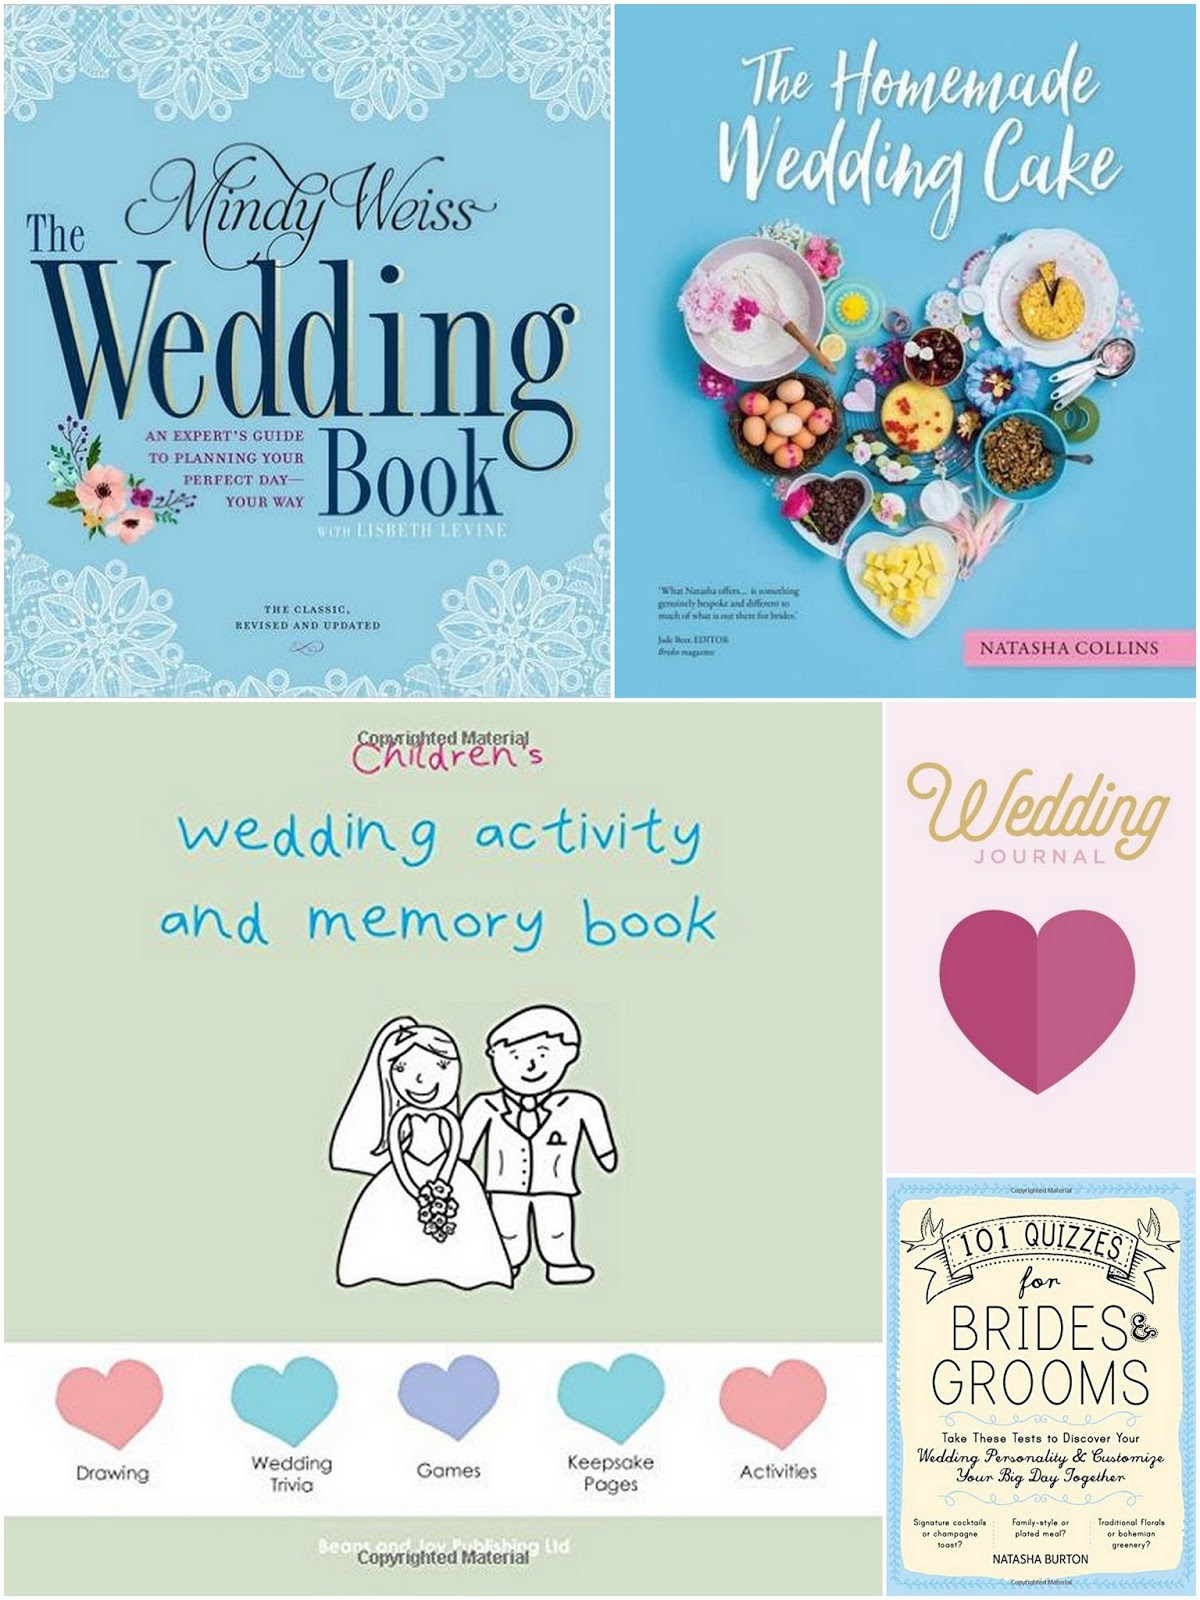 5 New Wedding Books to Get Your Hands On Now